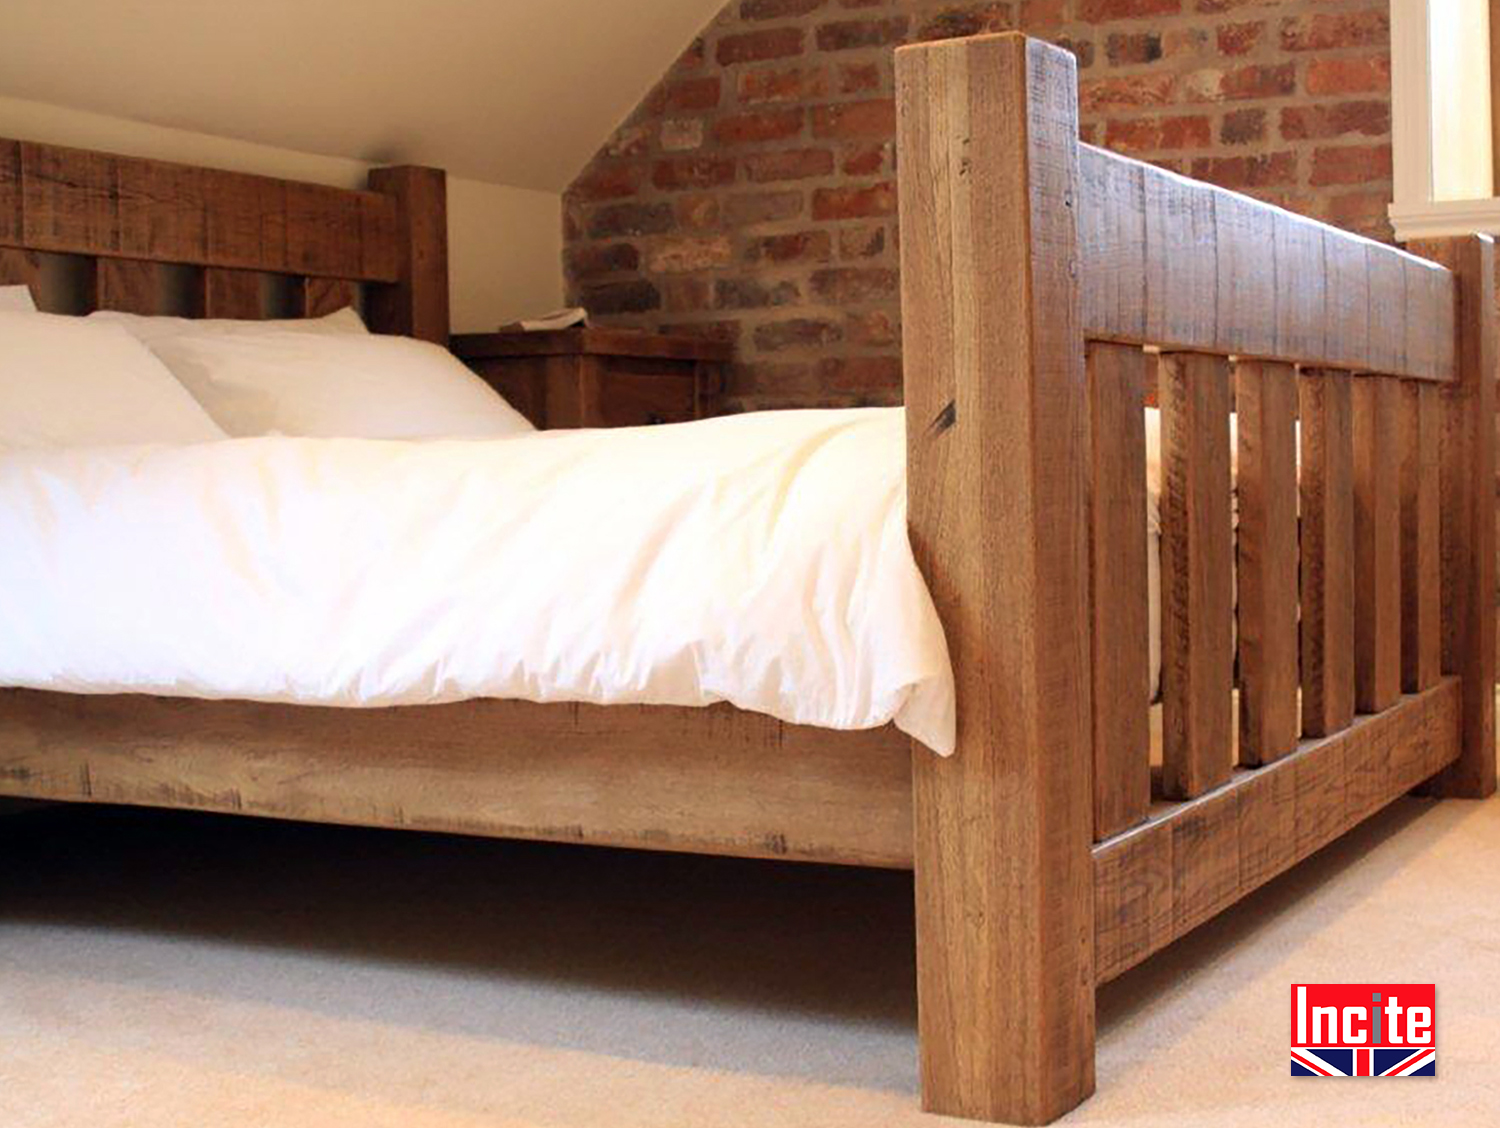 Custom Handmade Rustic Solid Oak Slat Bed By Incite Derby